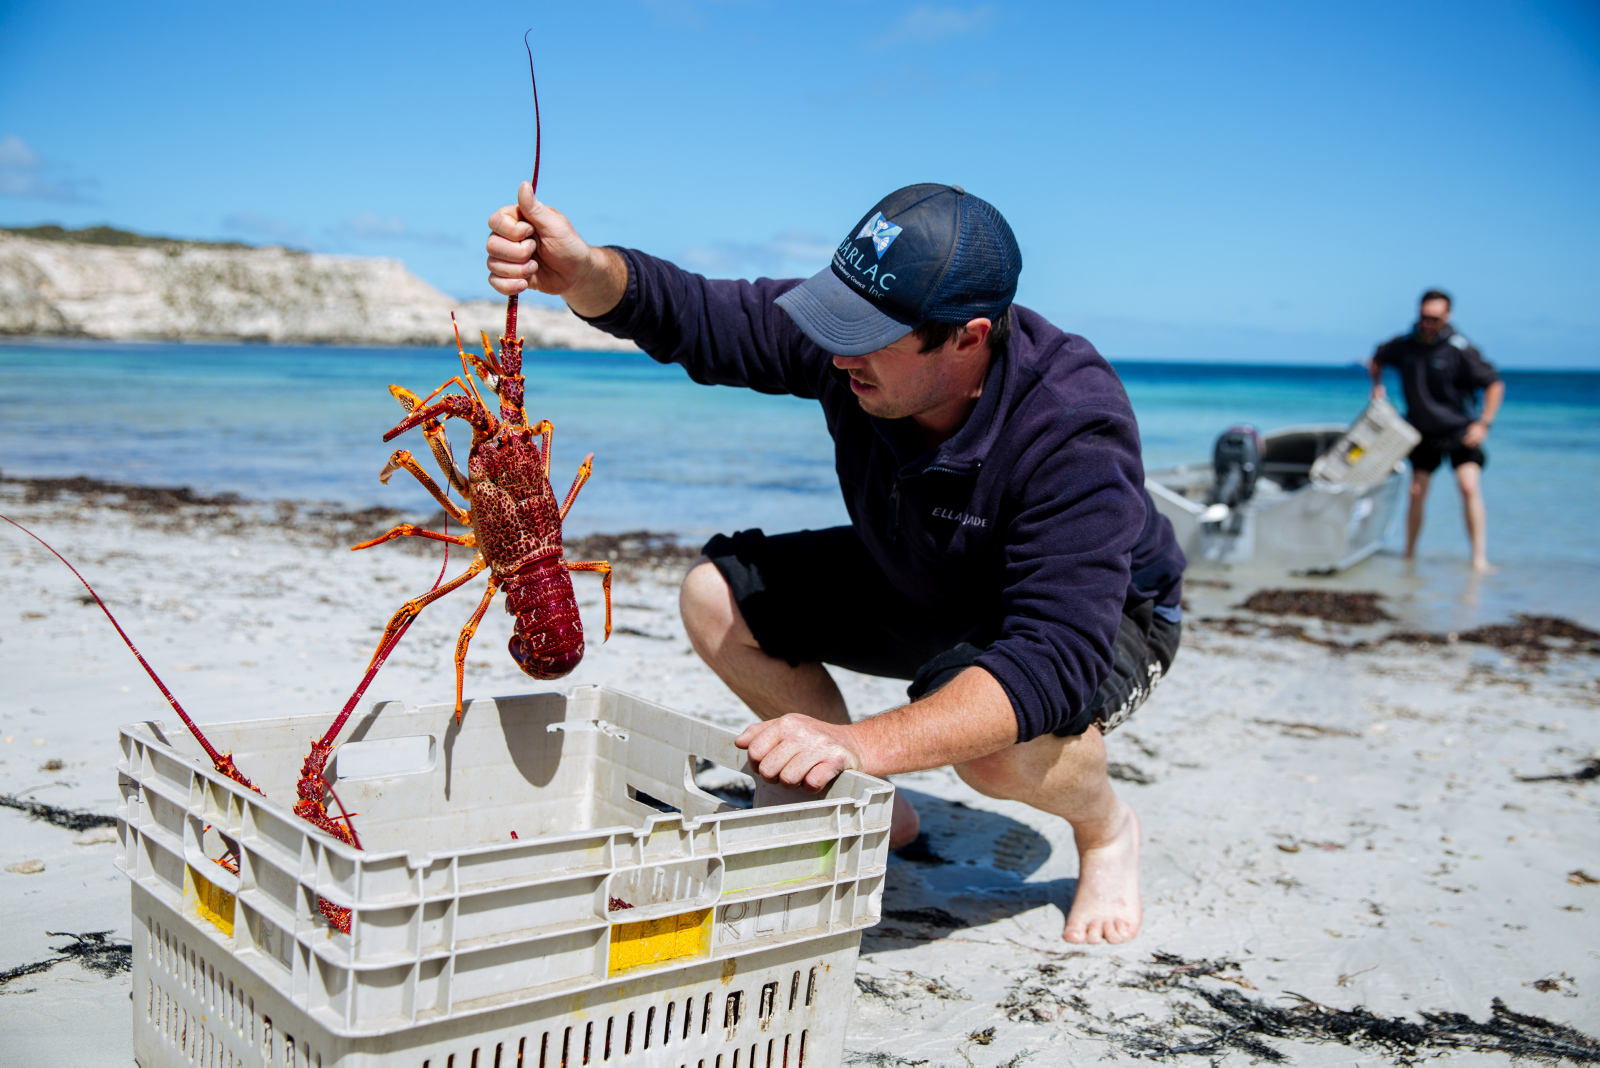 Crayfish among the local seafood bounty in Port Lincoln